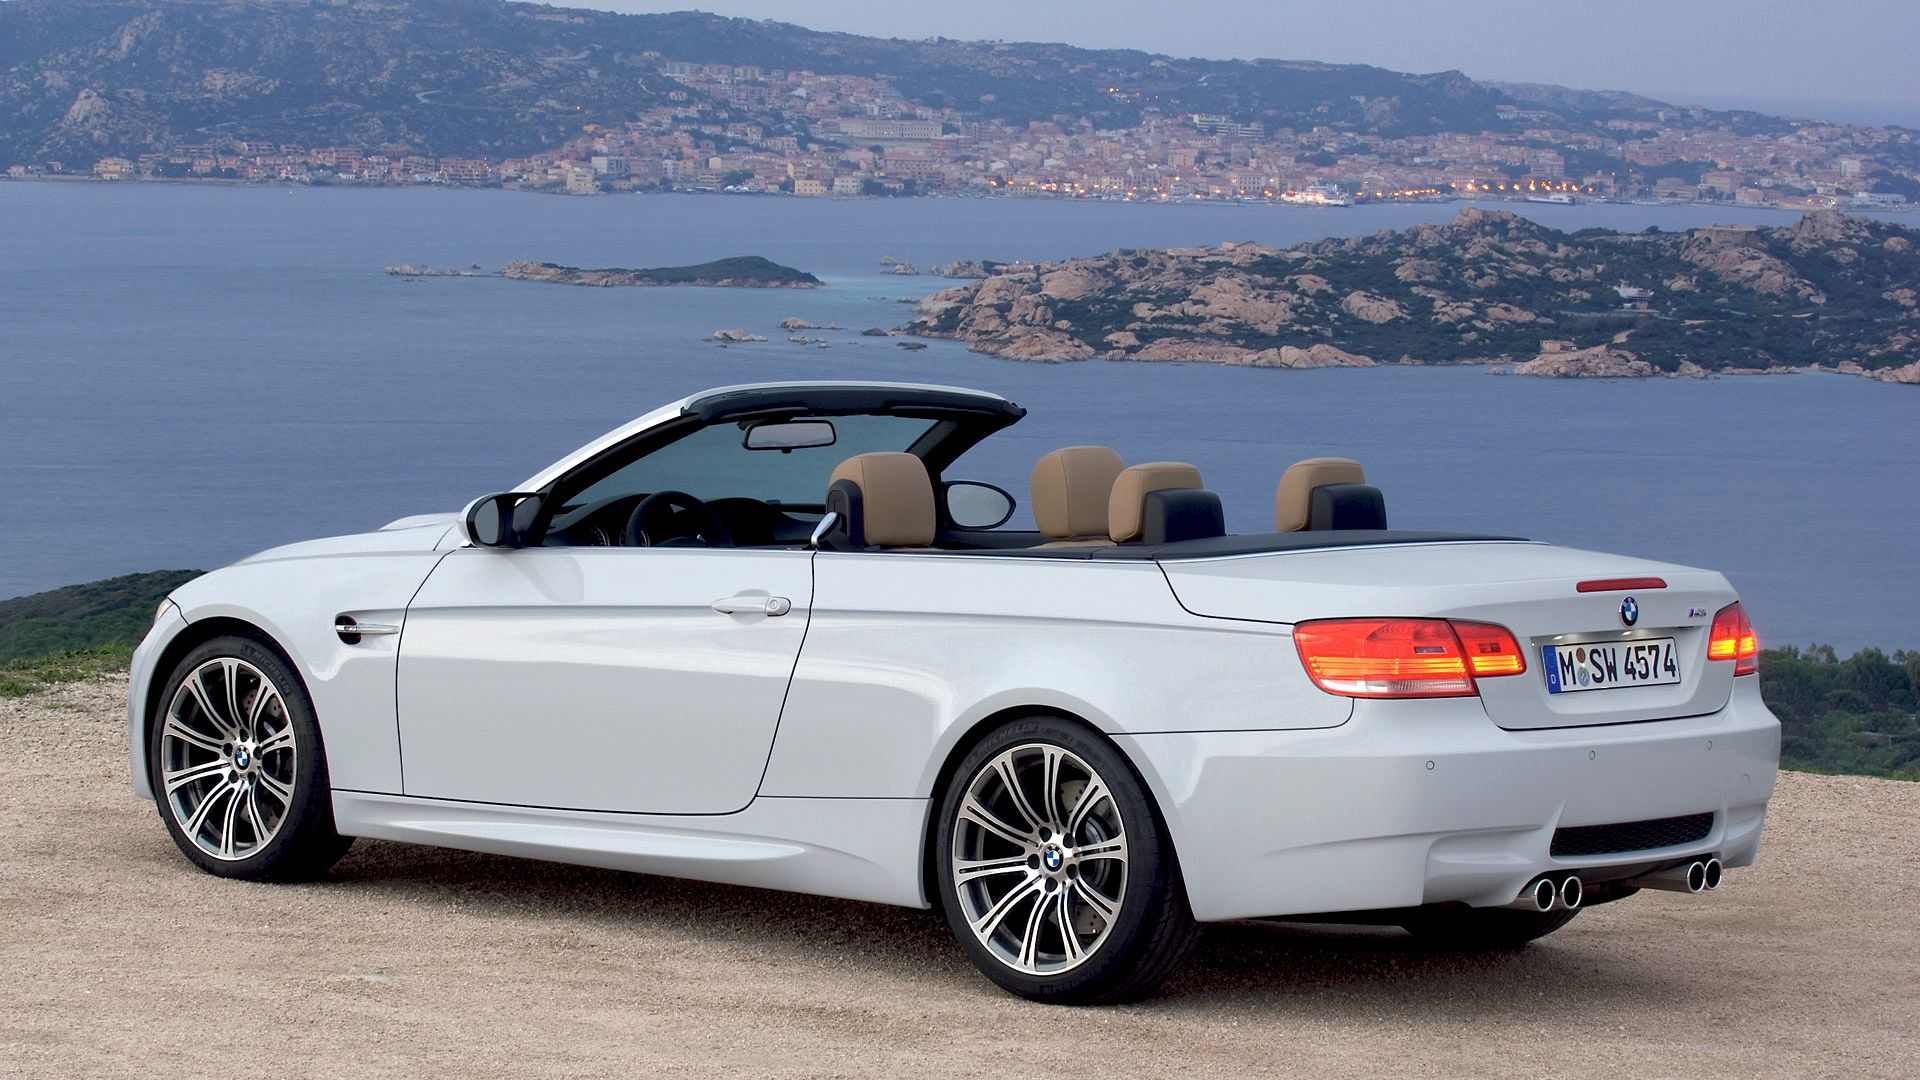 Bmw Mountain View >> Bmw M4 Convertible White Color And River Mountain View Bmw